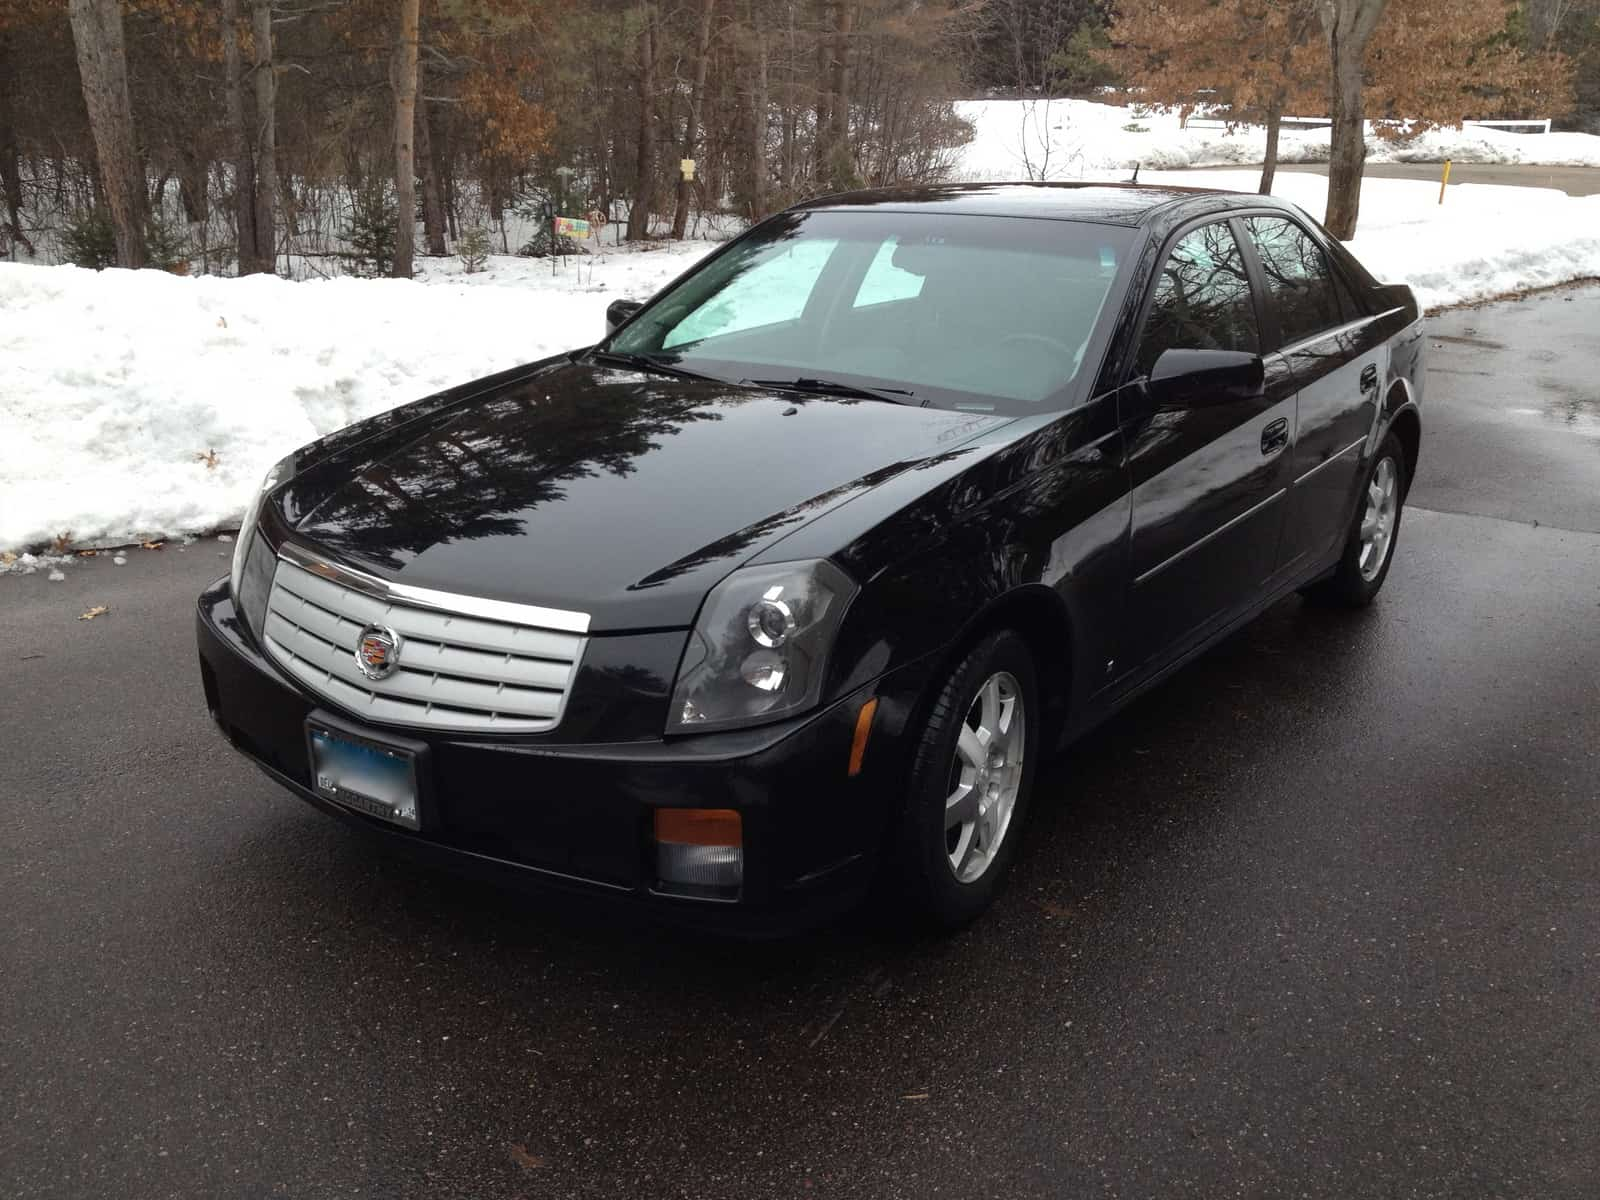 Cars under 5000 include the Cadillac CTS